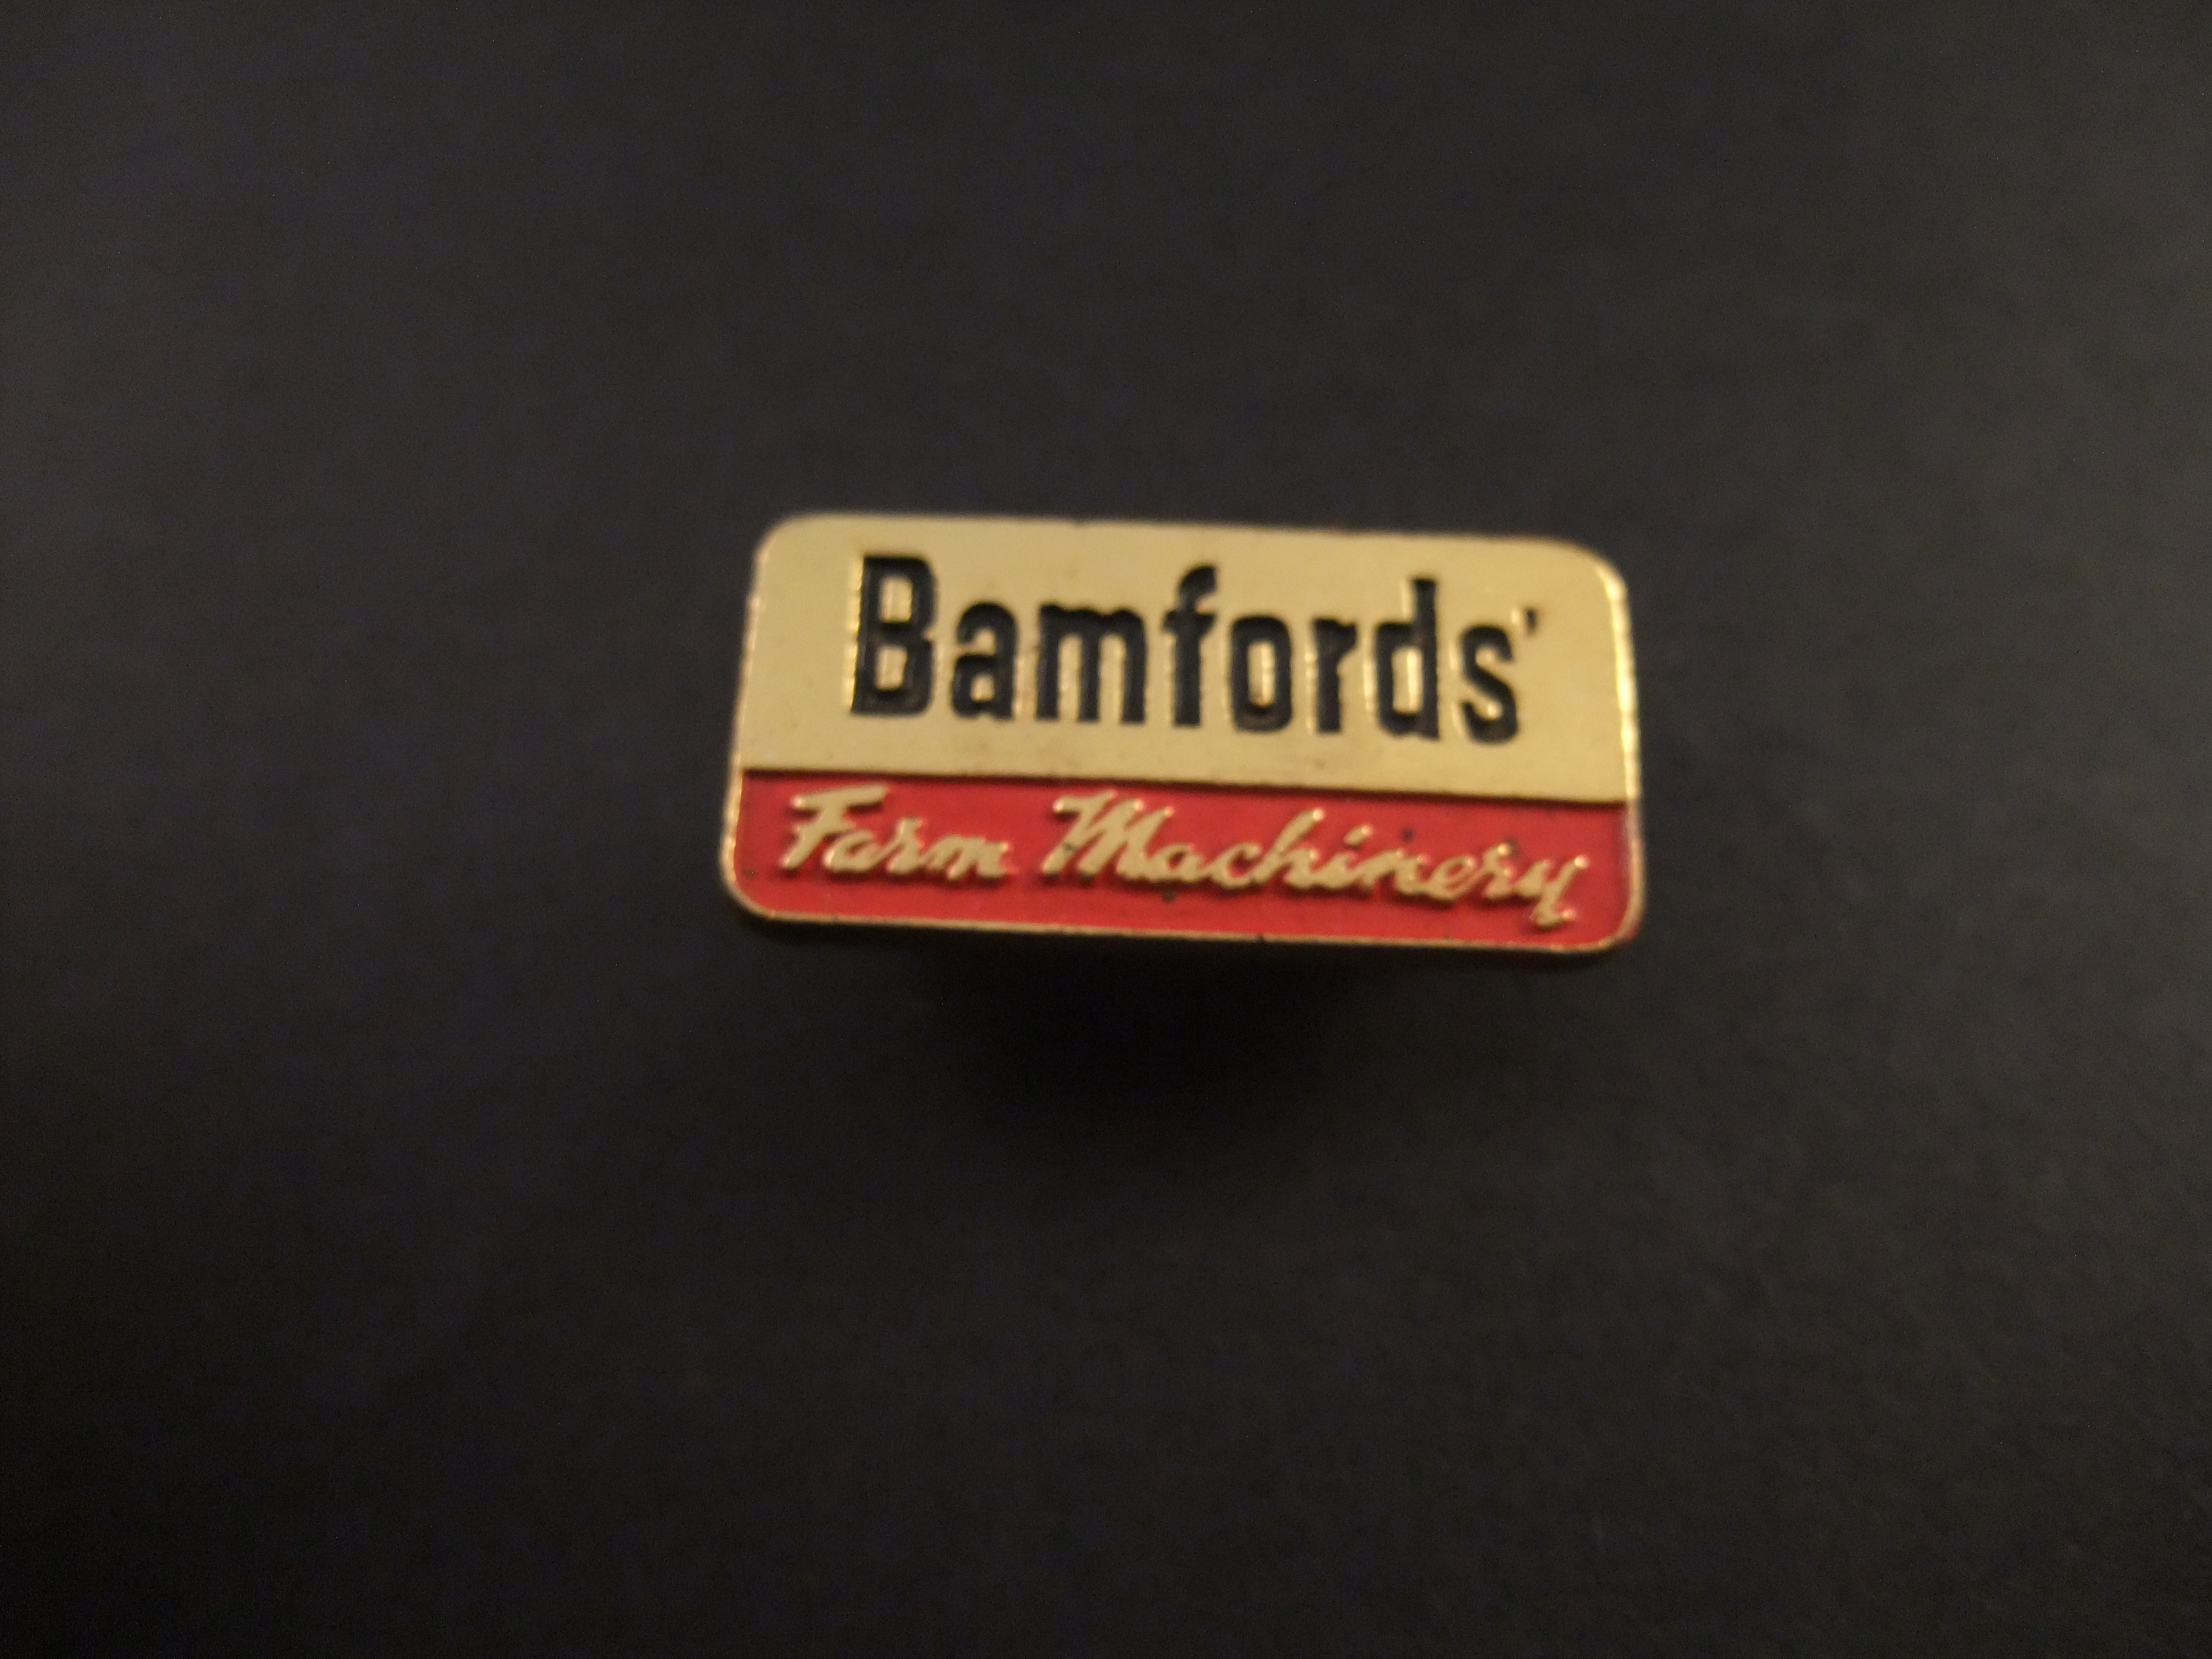 Bamfords farm machinery company ( landbouwmachines)